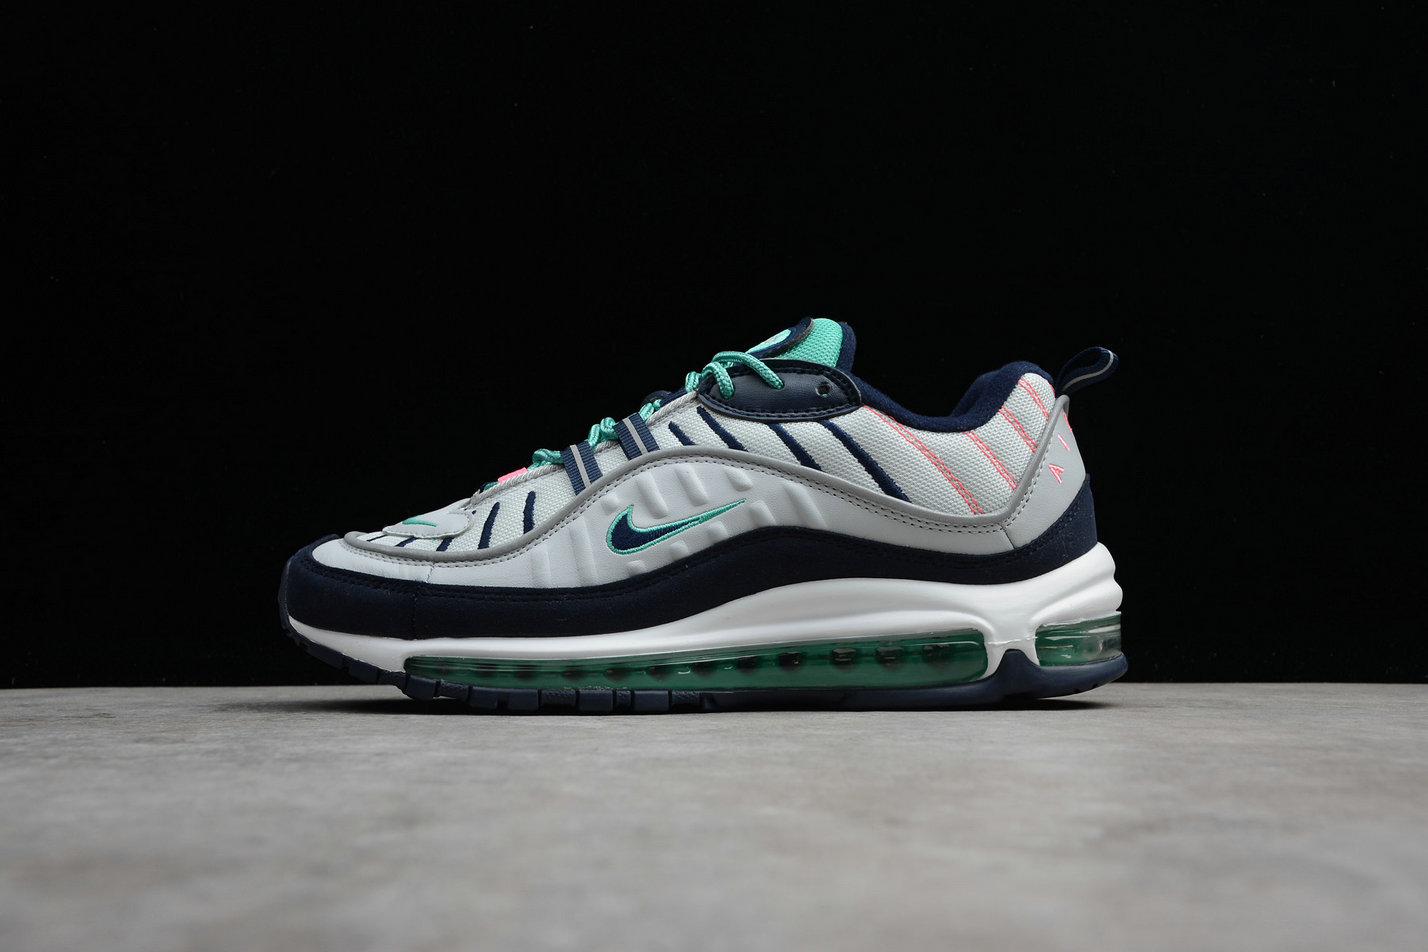 promo code 20f8e df177 Cheap Wholesale Nike Air Max 98 640744-005 Pure Platinum Obsidian Platine  Pur Obsidienne-